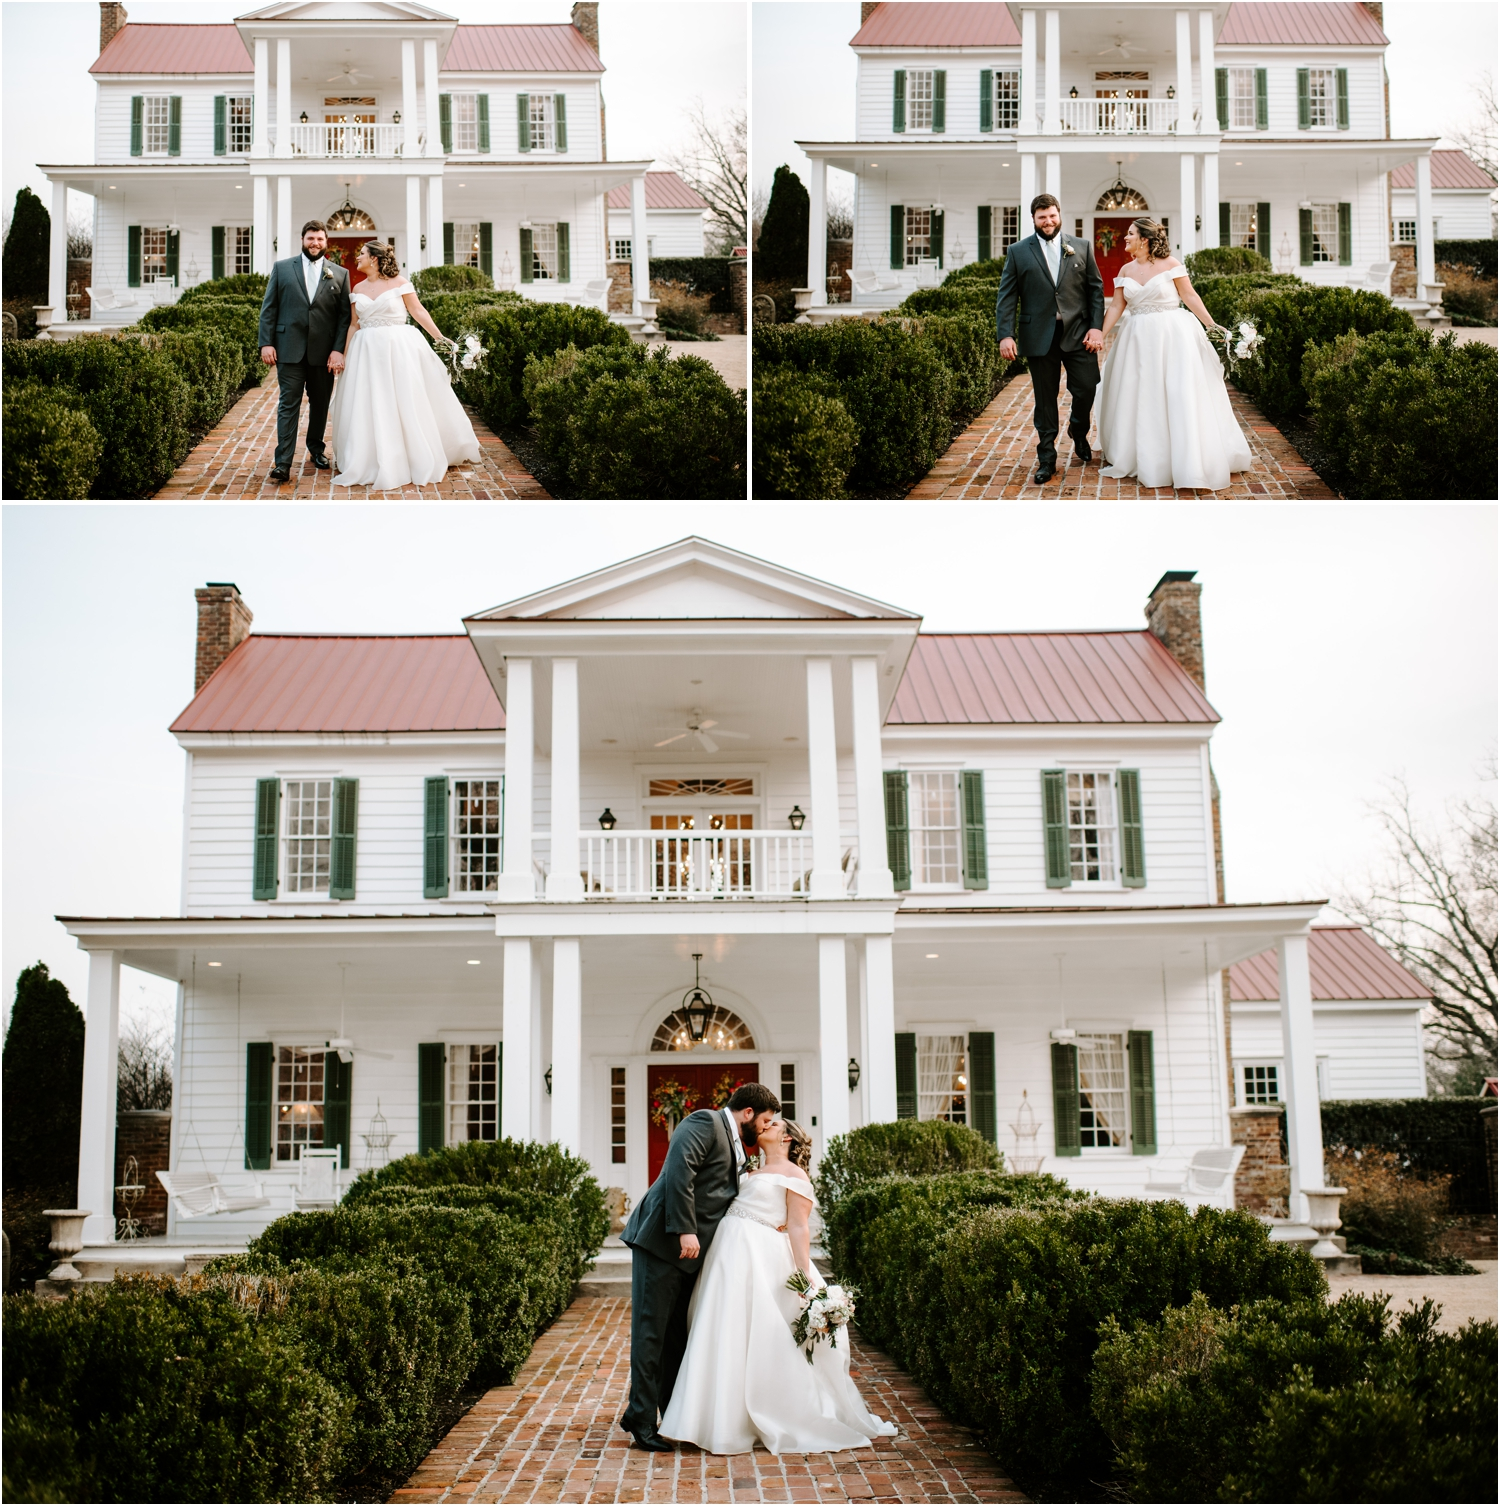 Memphis Tennessee Wedding Heartwood Hall Venue Bride and Groom Portrait Candid